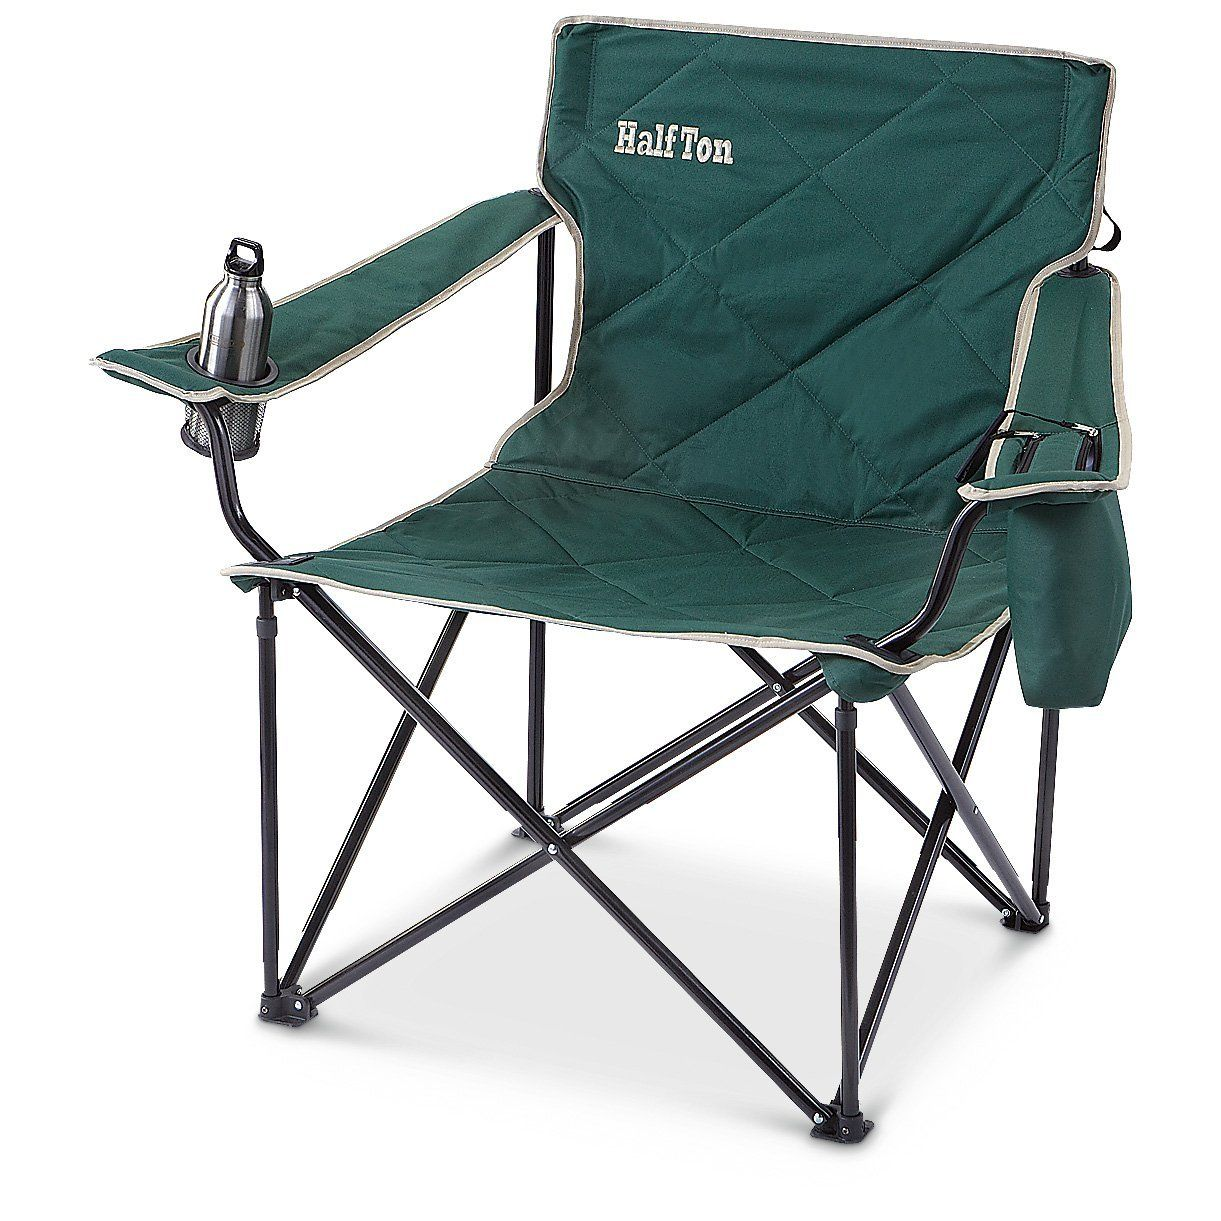 Camping Chairs For Heavy People For Big And Heavy People